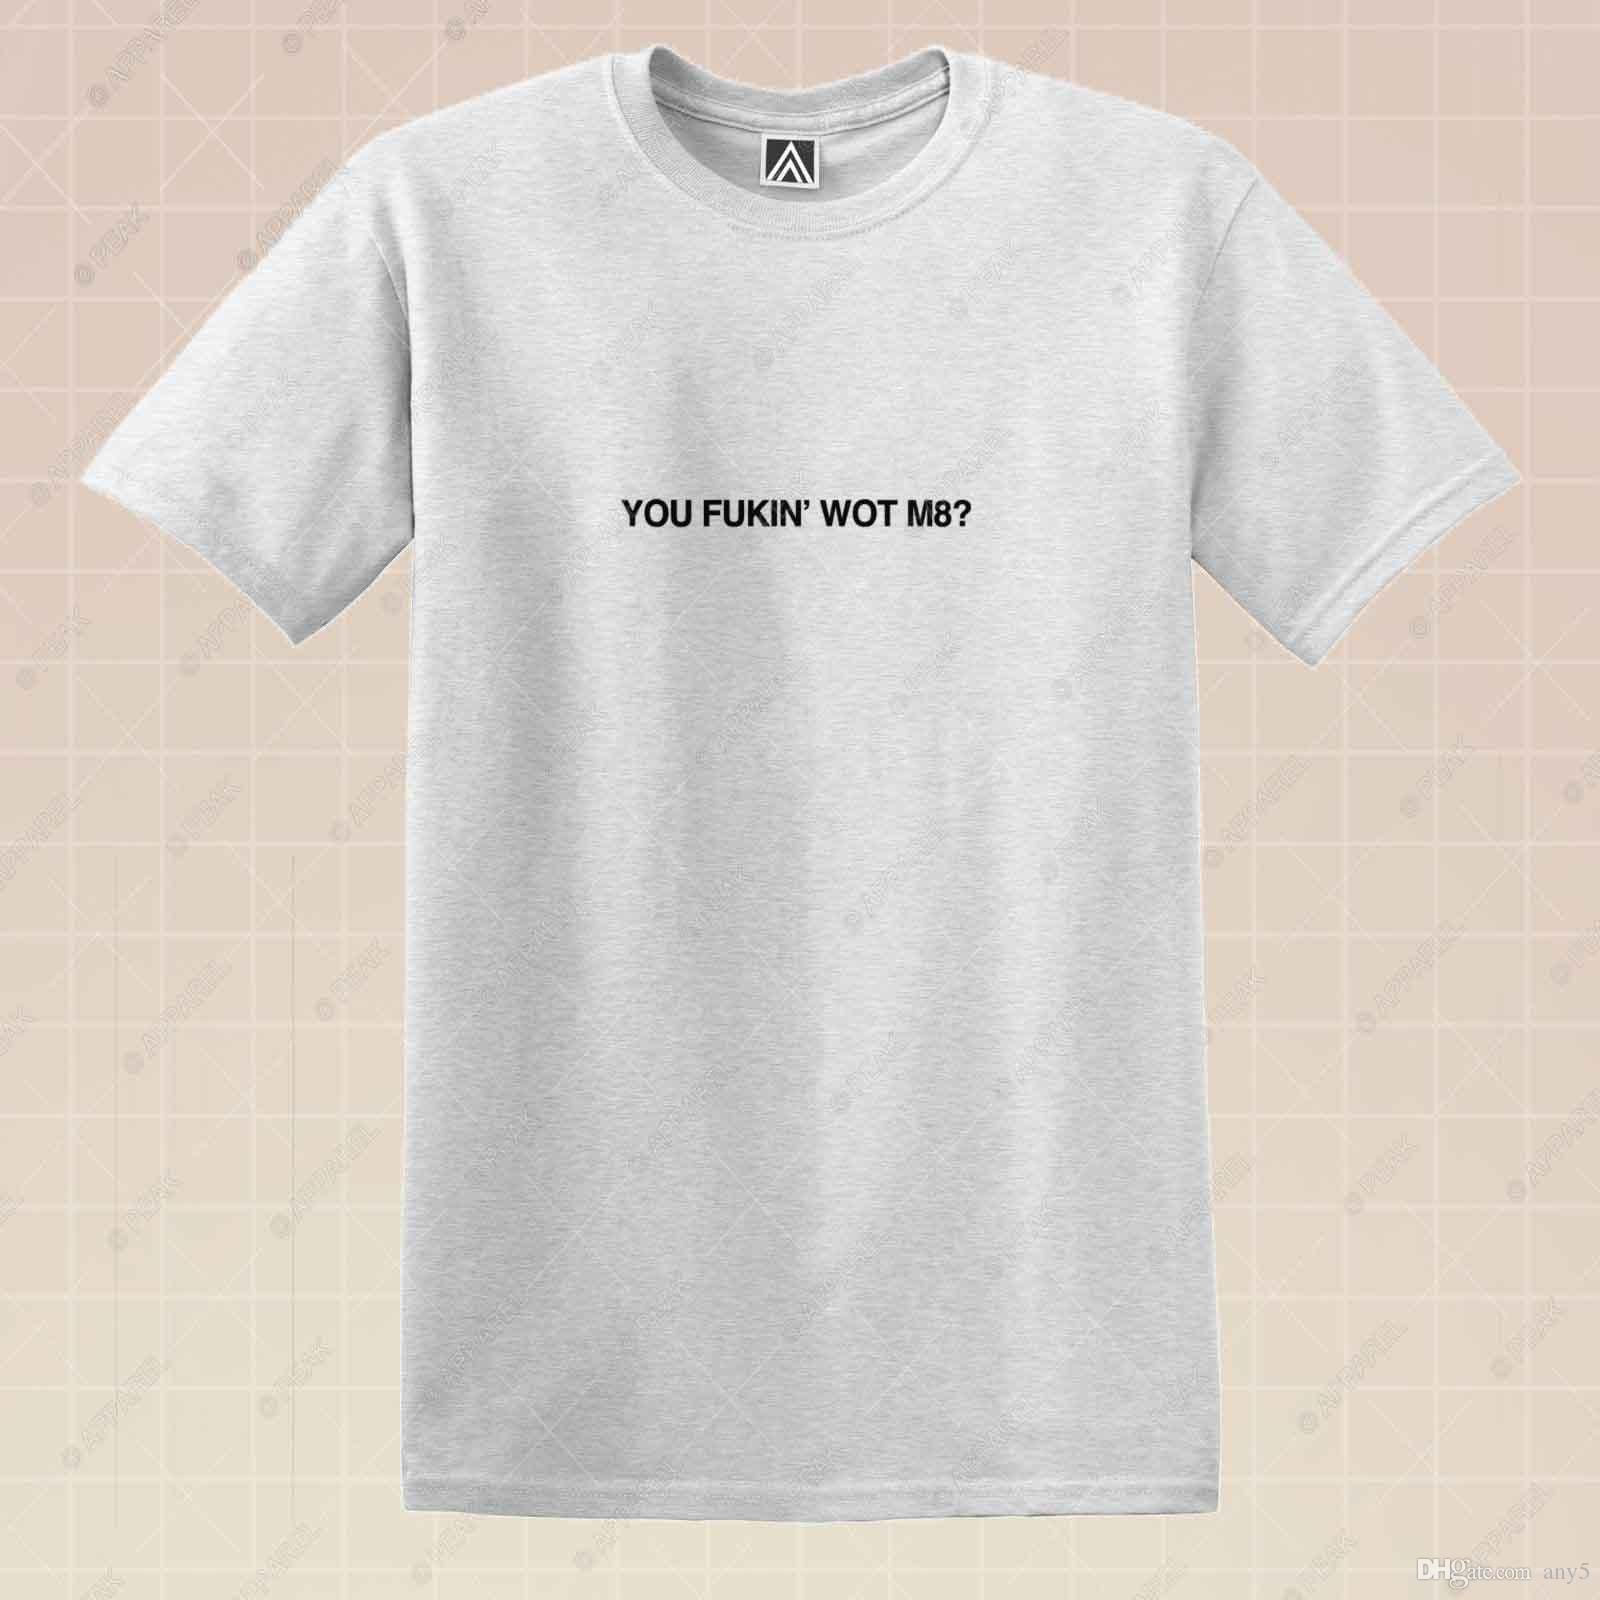 9998071d Wot Mate T Shirt Chav Parody Slogan Hipster Tee Festival Indie Hypebeast  Top White Shirt Tee Shirts From Any5, $13.19  DHgate.Com